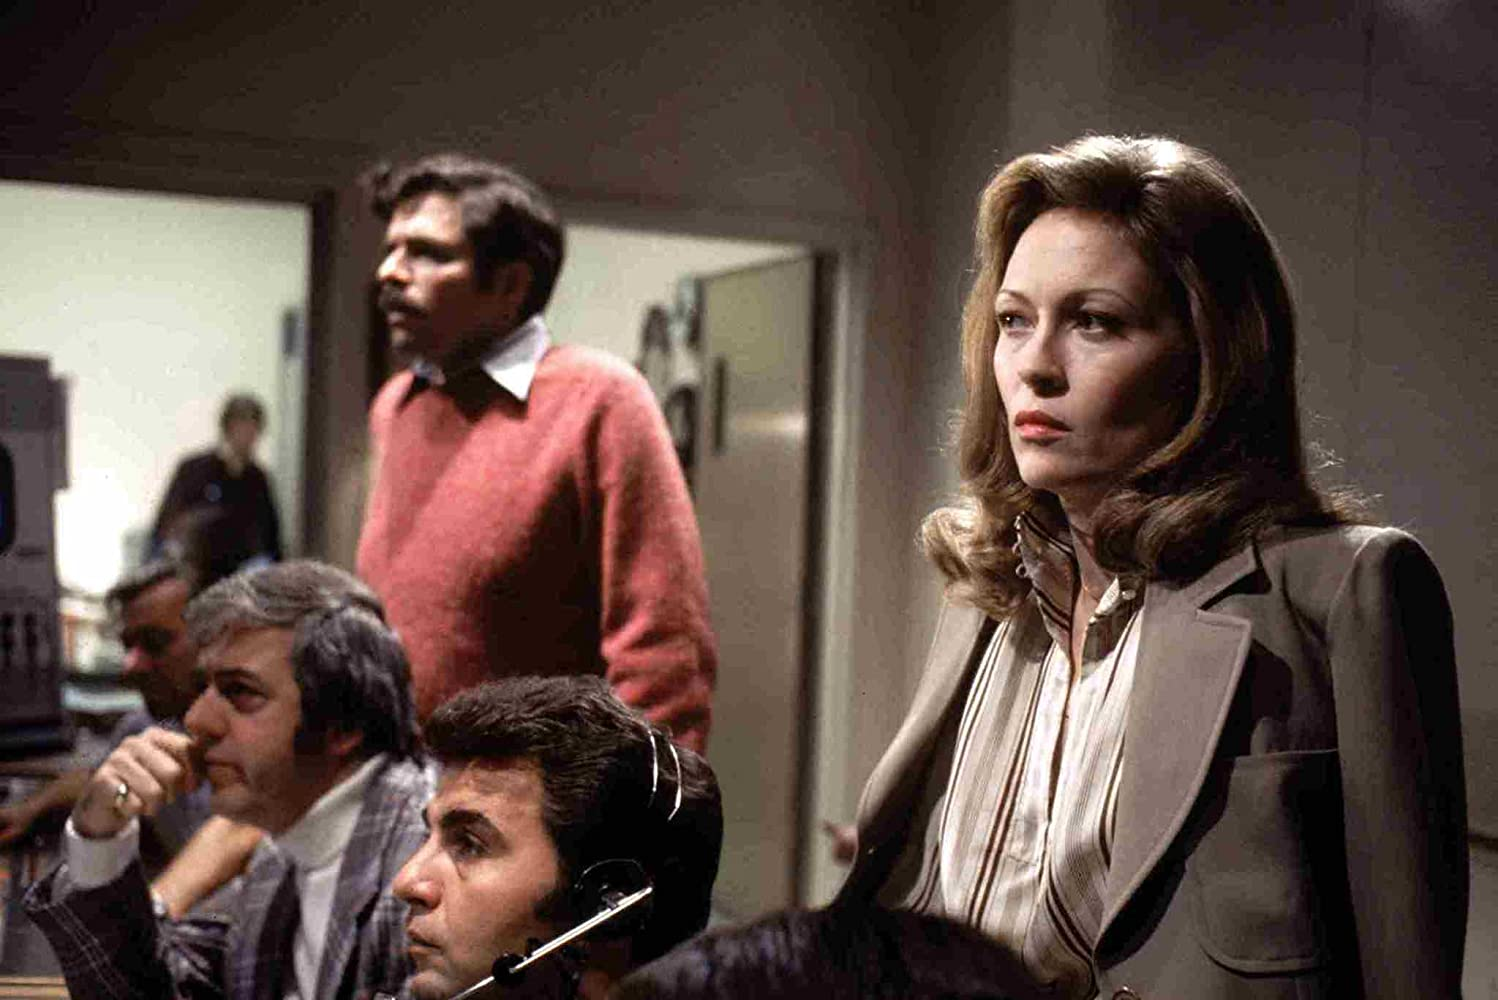 Faye Dunaway, Bill Burrows, and Jordan Charney in Network (1976)